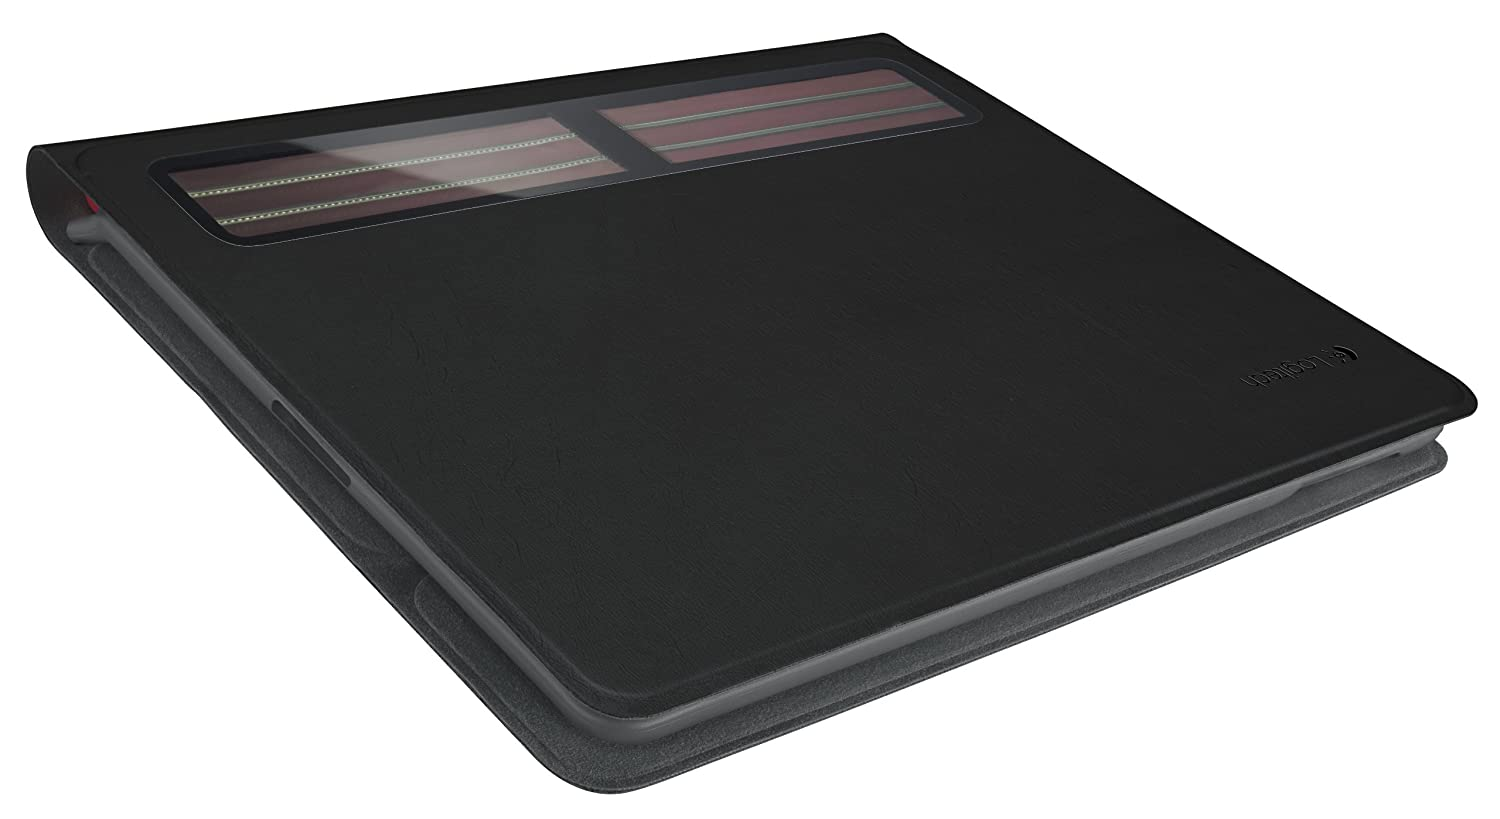 Logitech Solar Keyboard Folio for iPad 2 and iPad (3rd/4th generation) ($67.99)